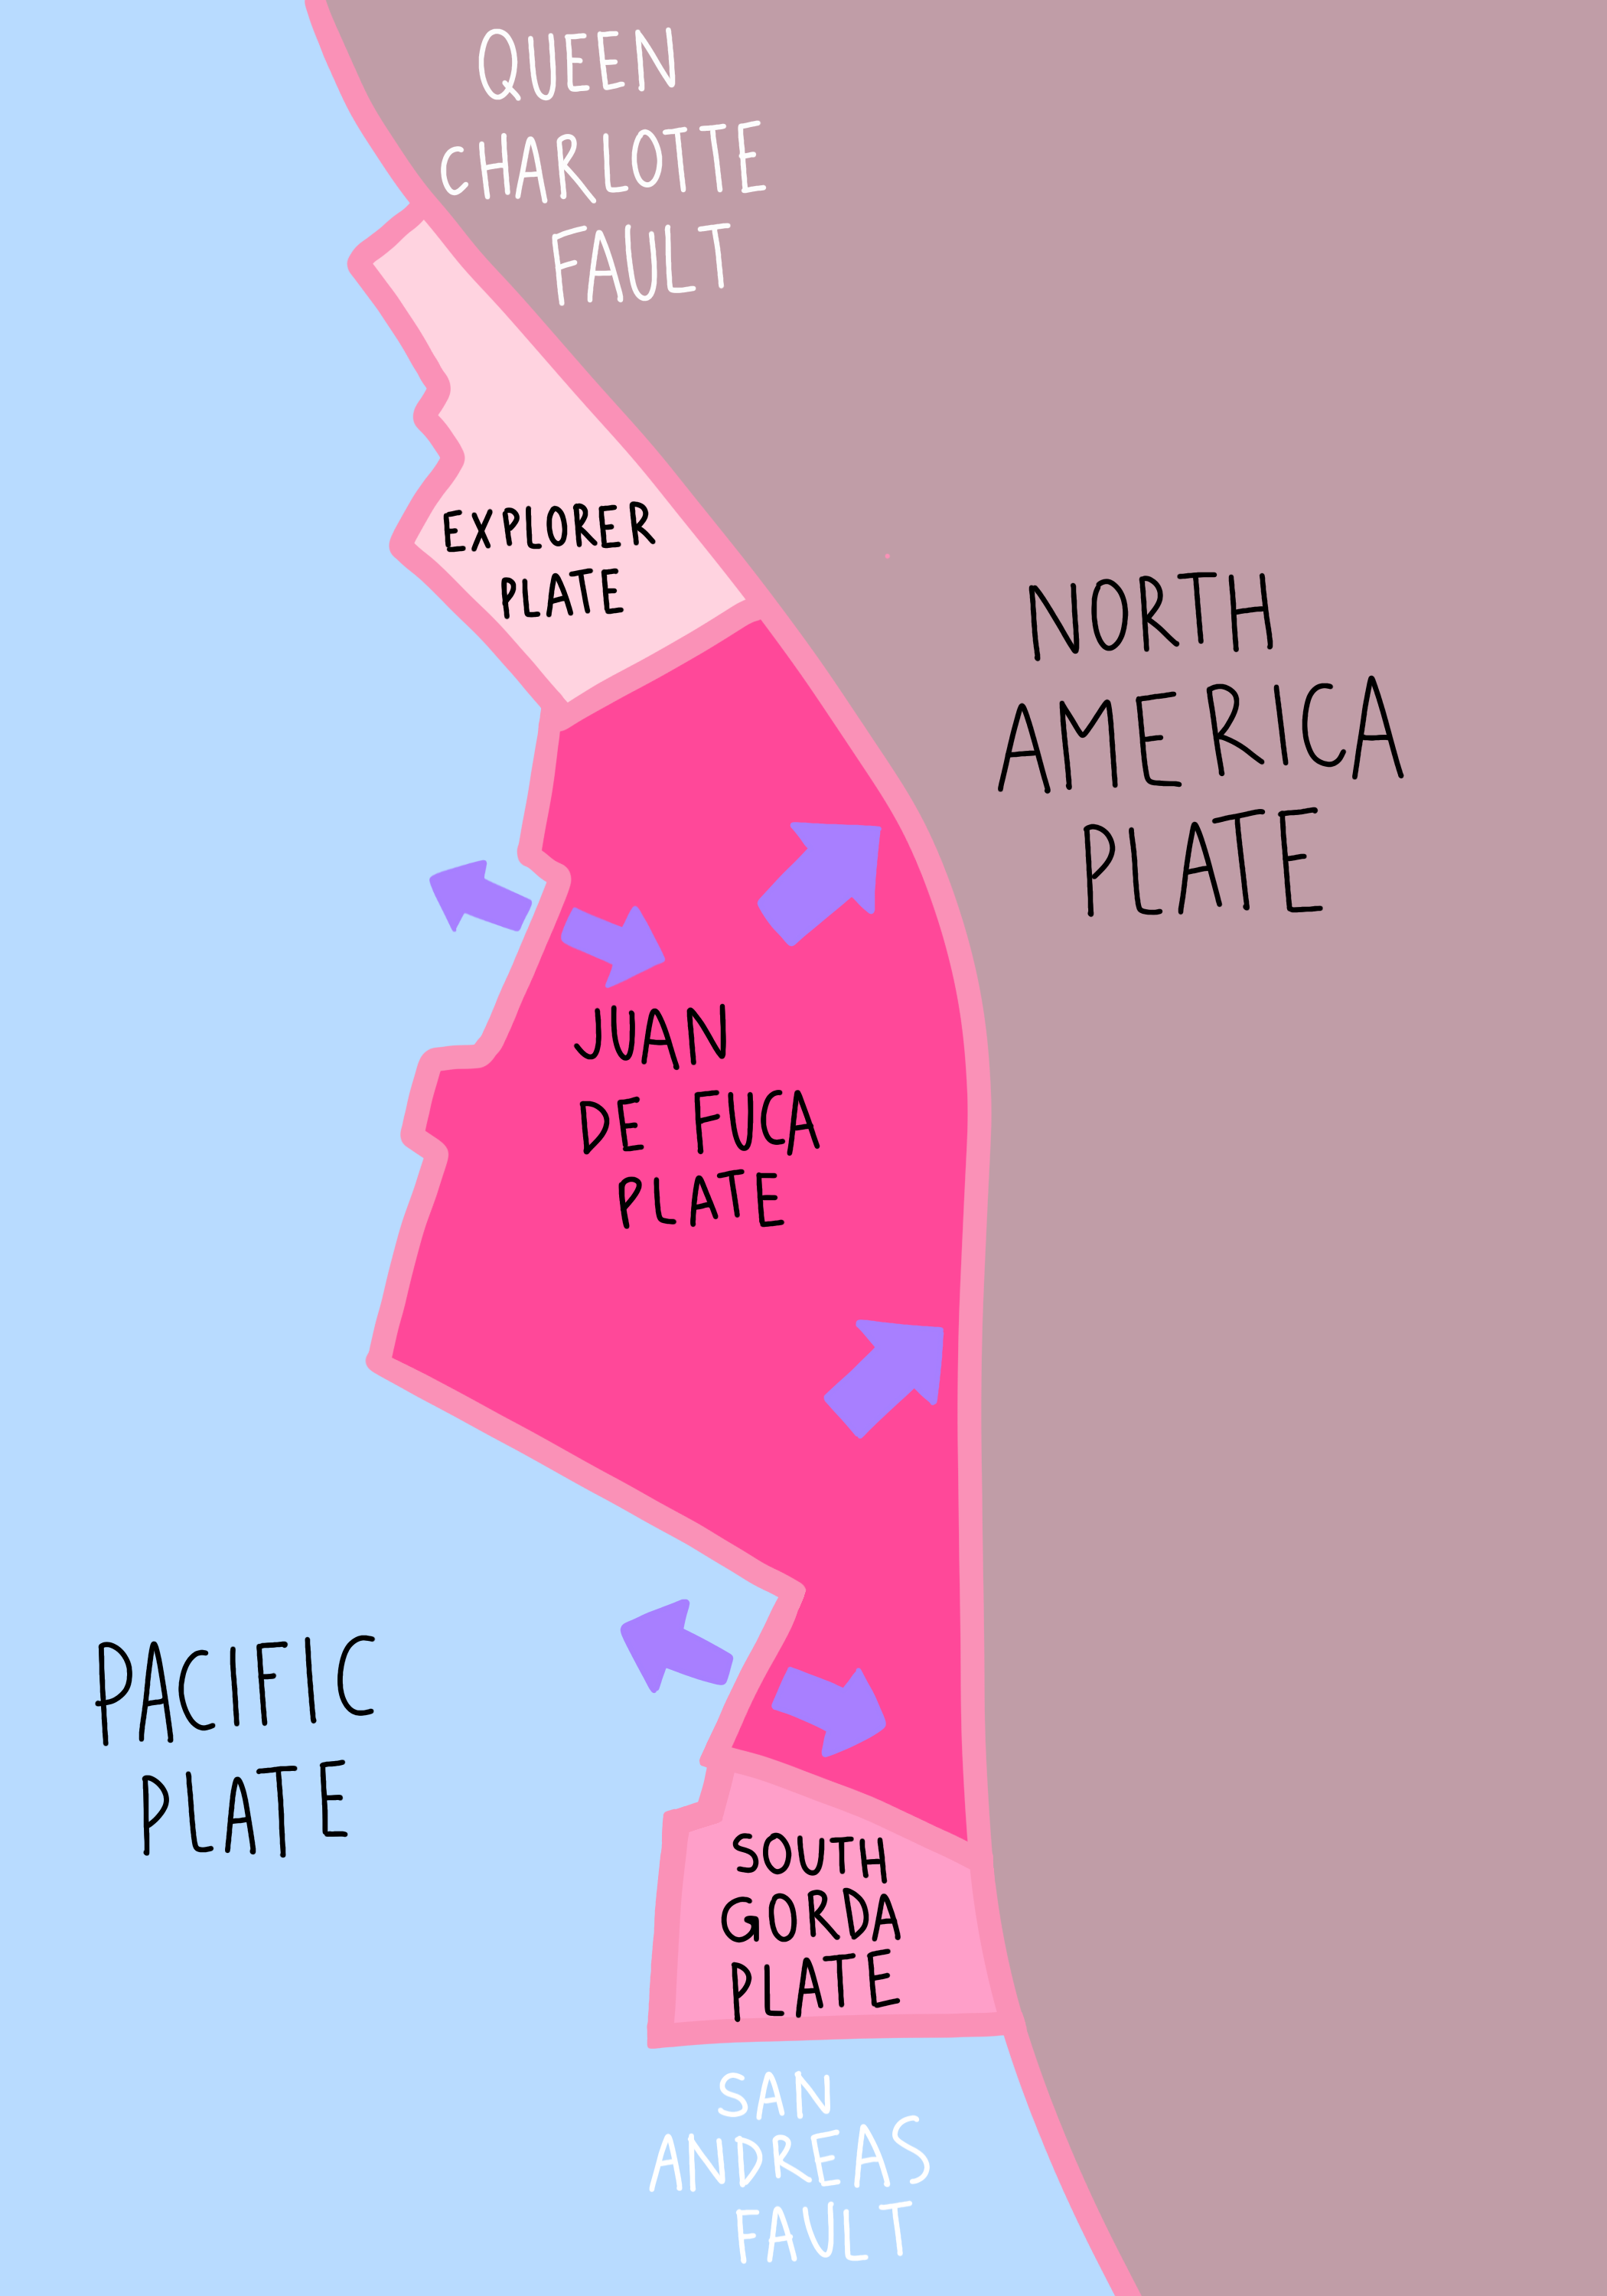 The fault in our plates.